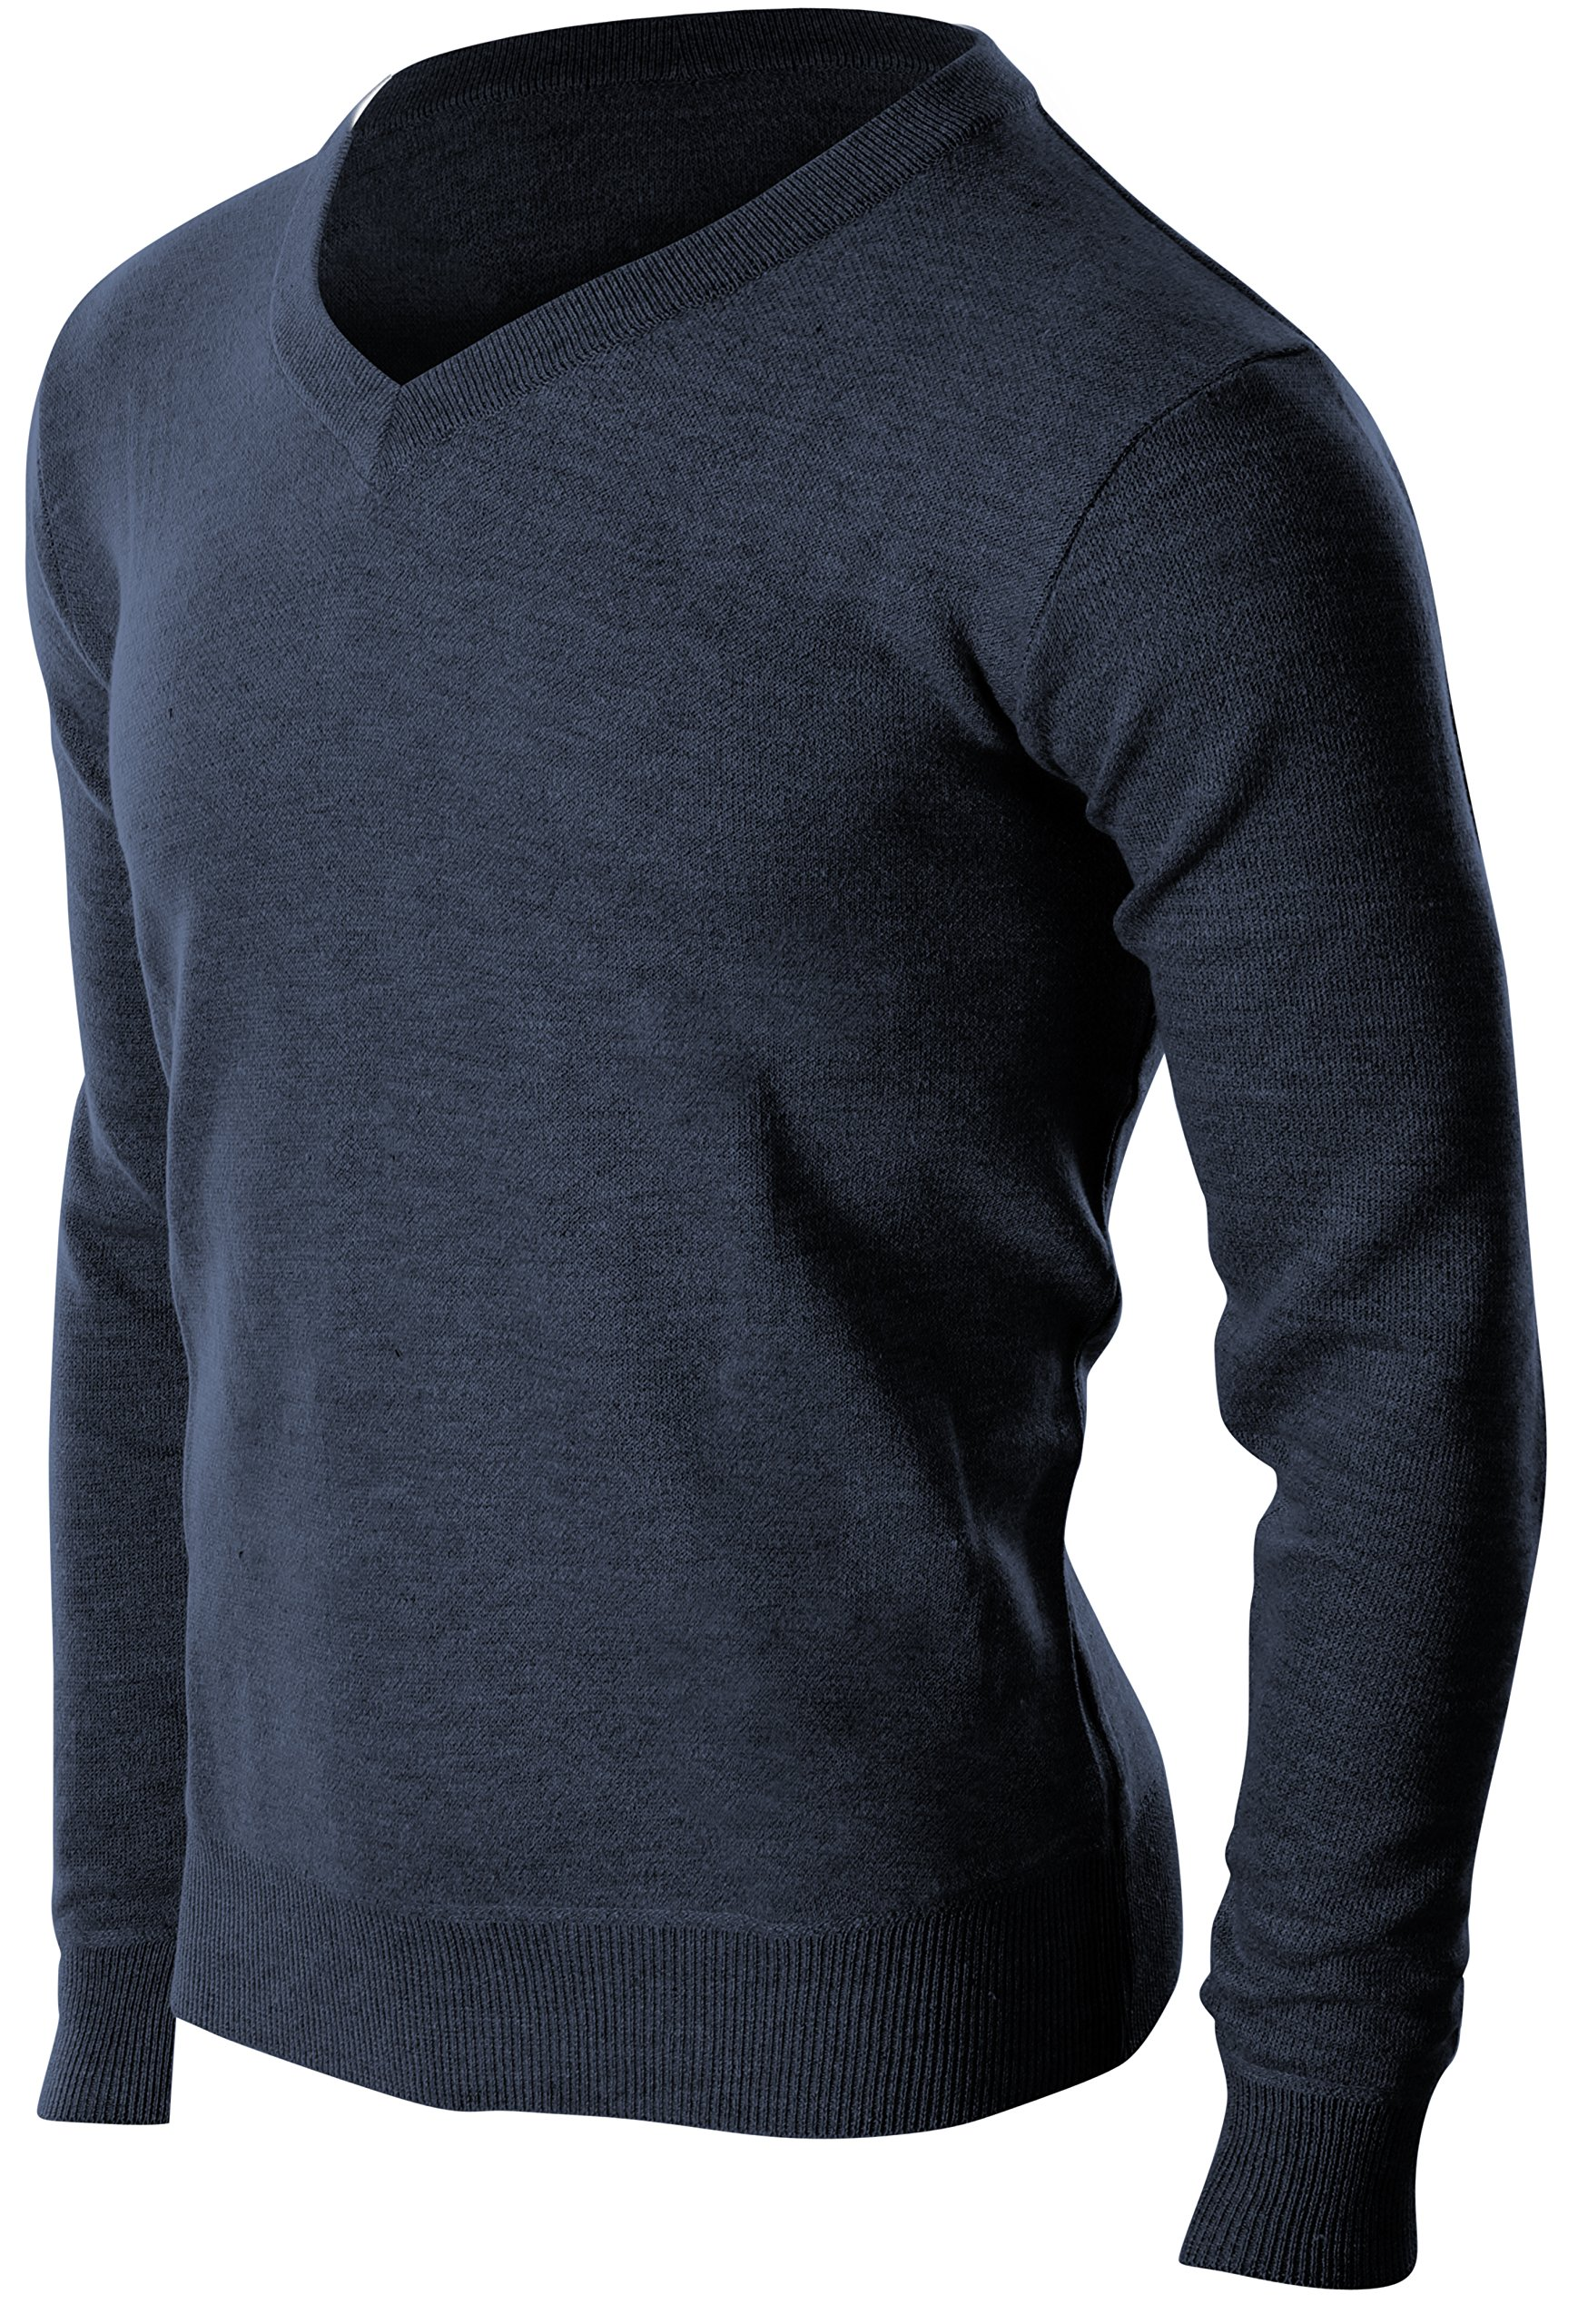 Enimay Men's Business Casual Dress Quality Soft Fall Winter Cozy V-Neck Sweater